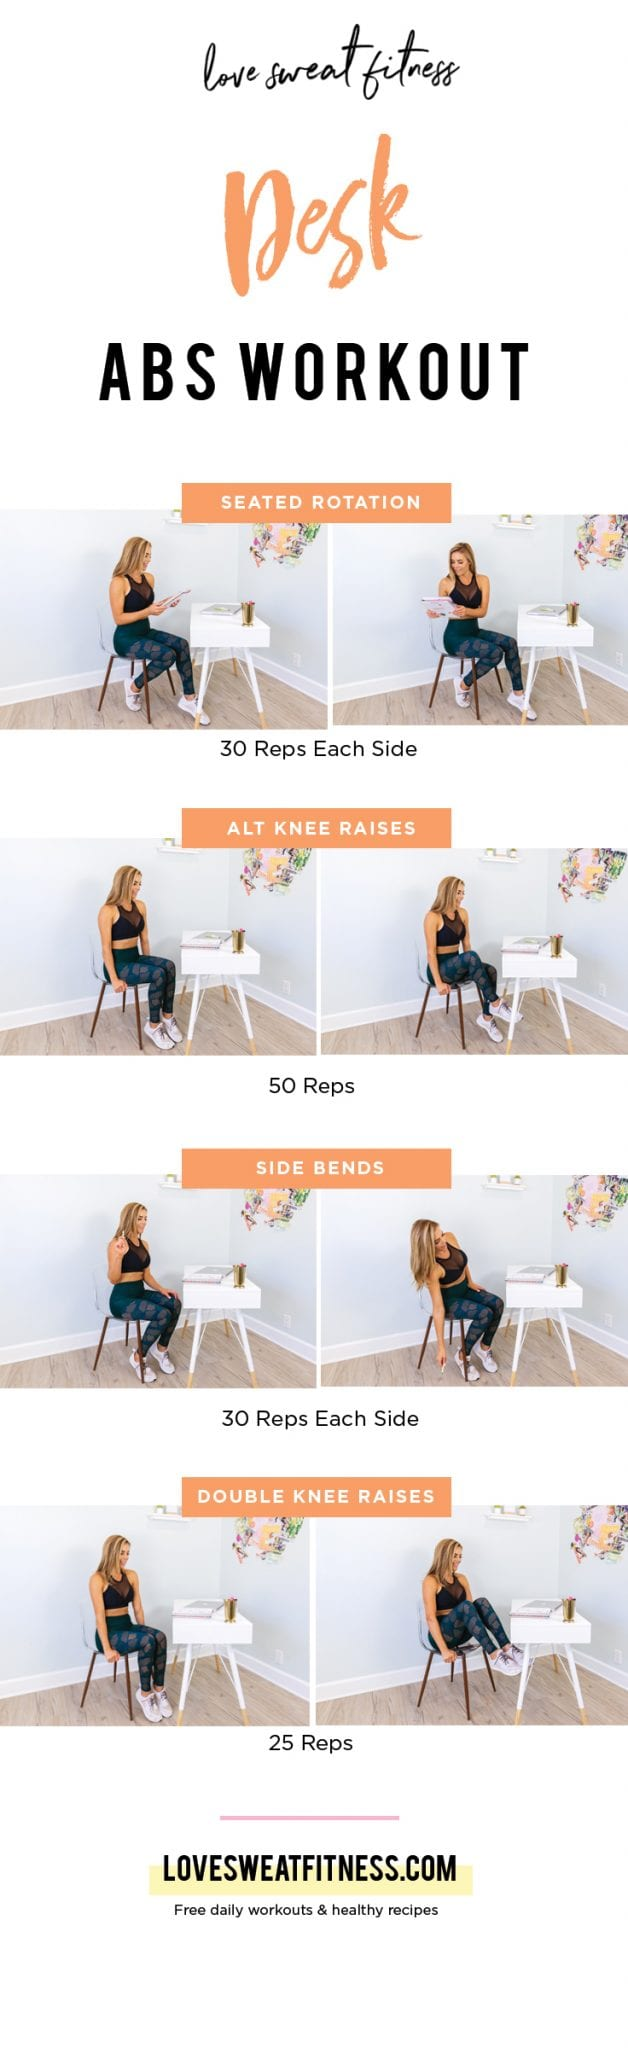 Get An Abs Workout At Your Desk Love Sweat Fitness